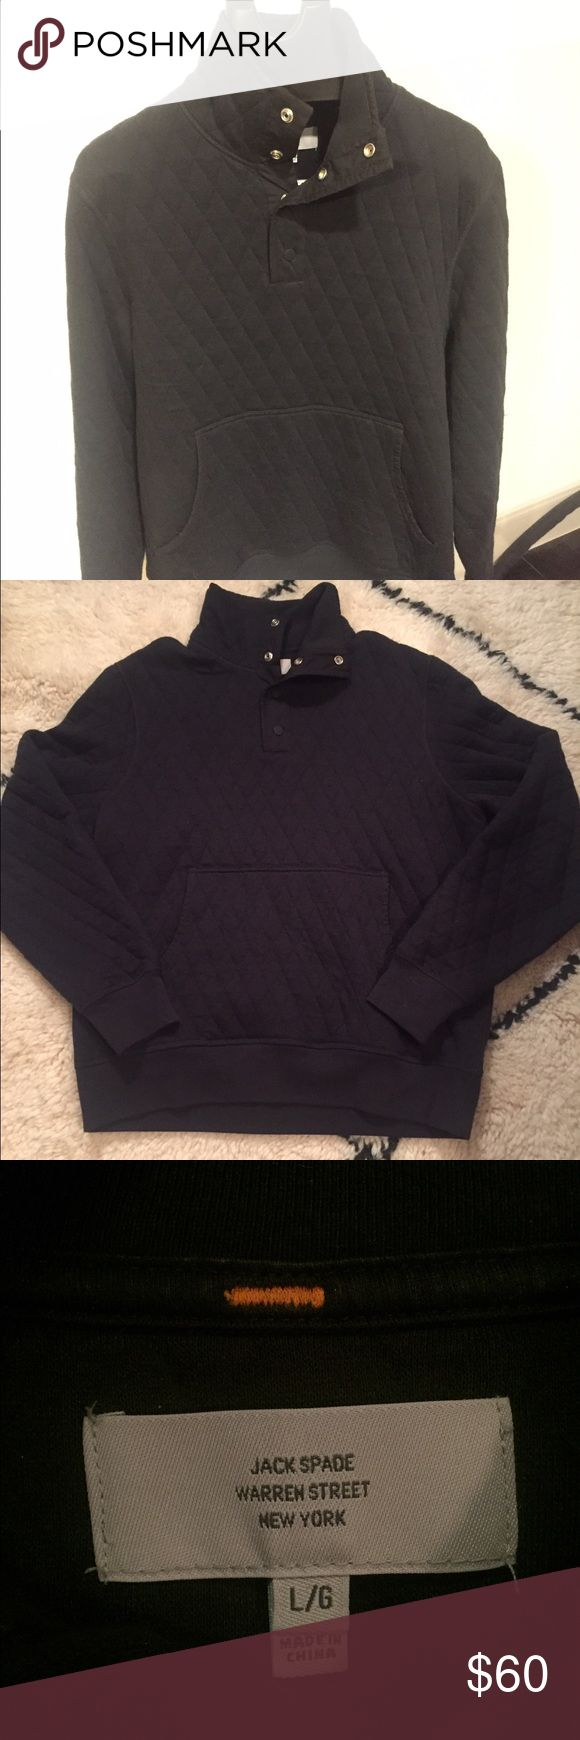 Jack Spade Large quilted pullover sweater Black large Jack Spade quilted sweater pullover with button snaps. Worn very few times without any tears or stains. Very comfortable and is like new, great piece for any wardrobe Jack Spade Sweaters